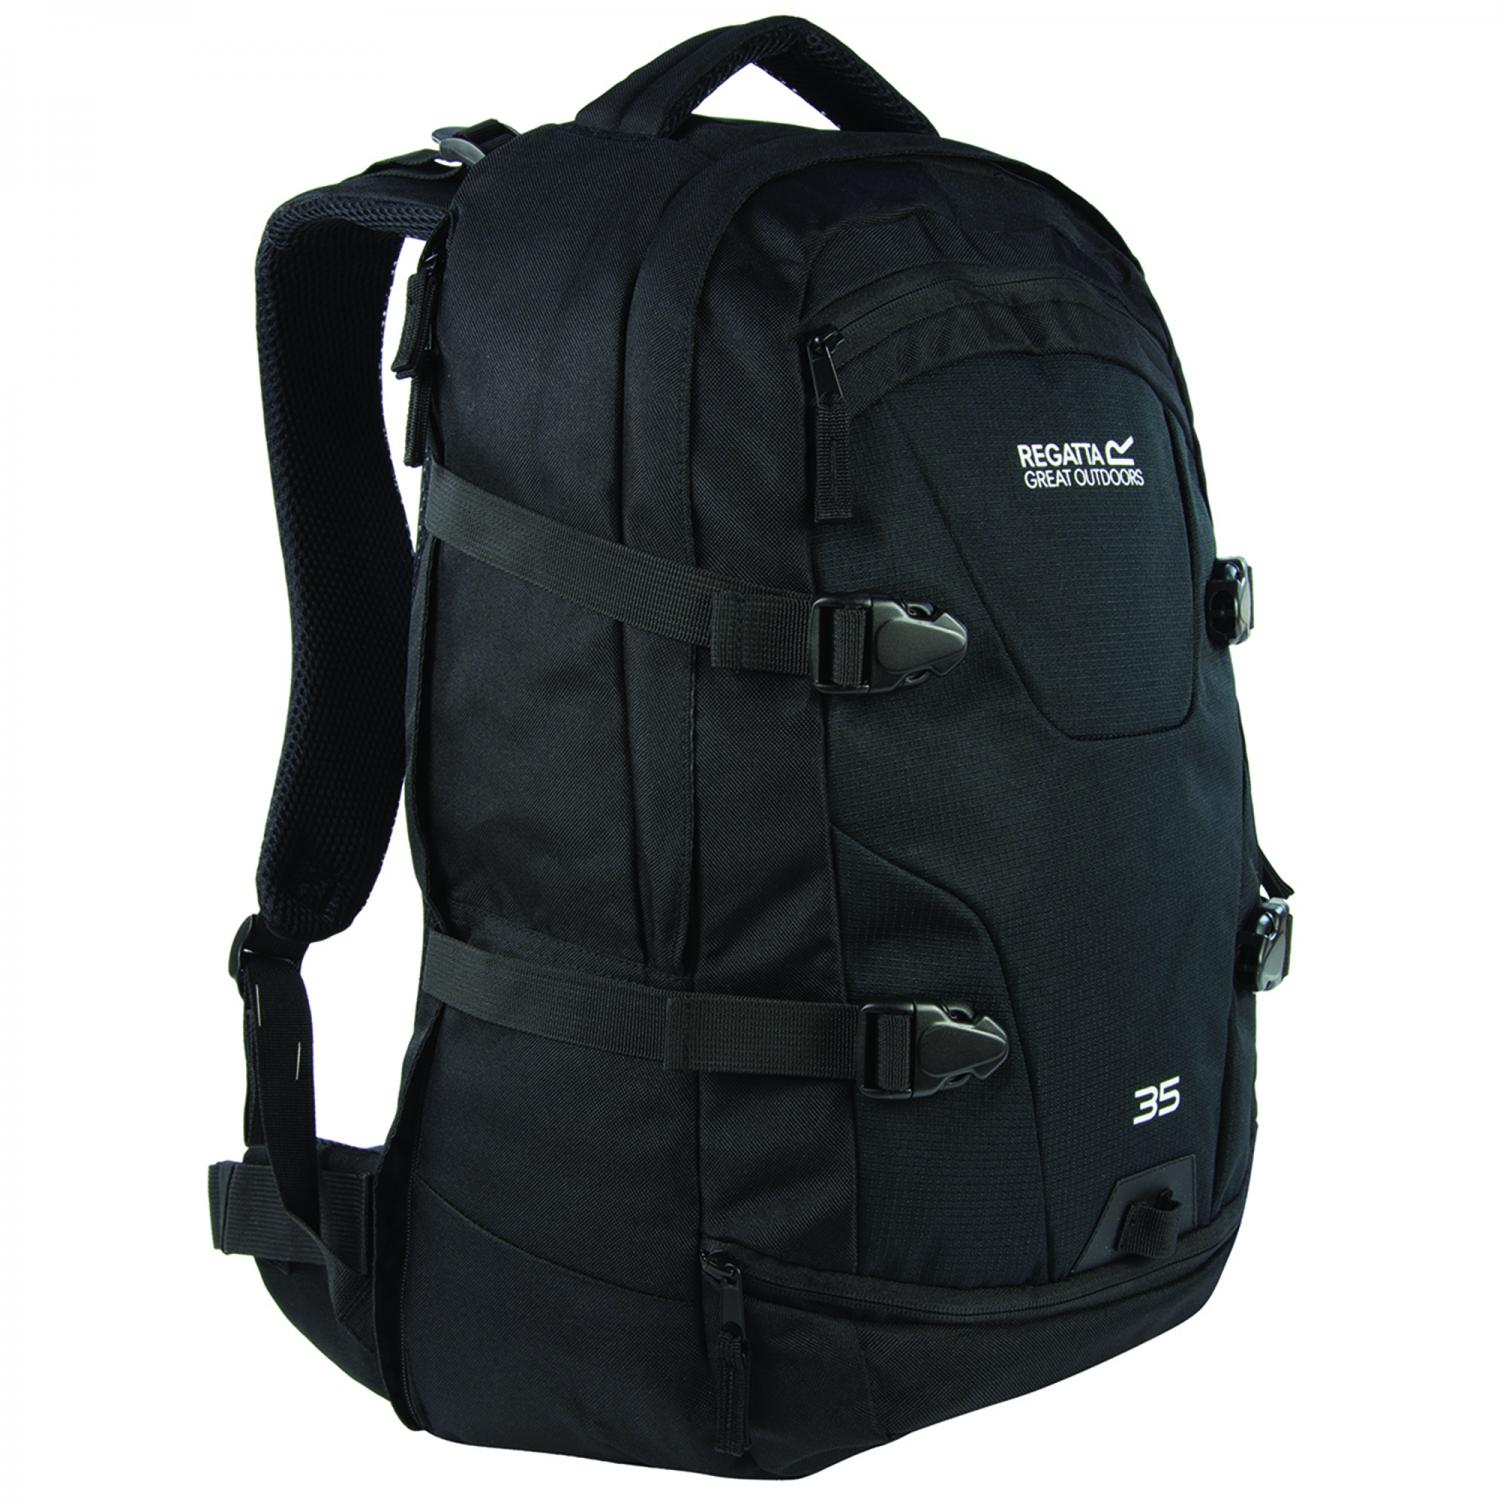 Paladen 35 Litre Laptop Backpack Black